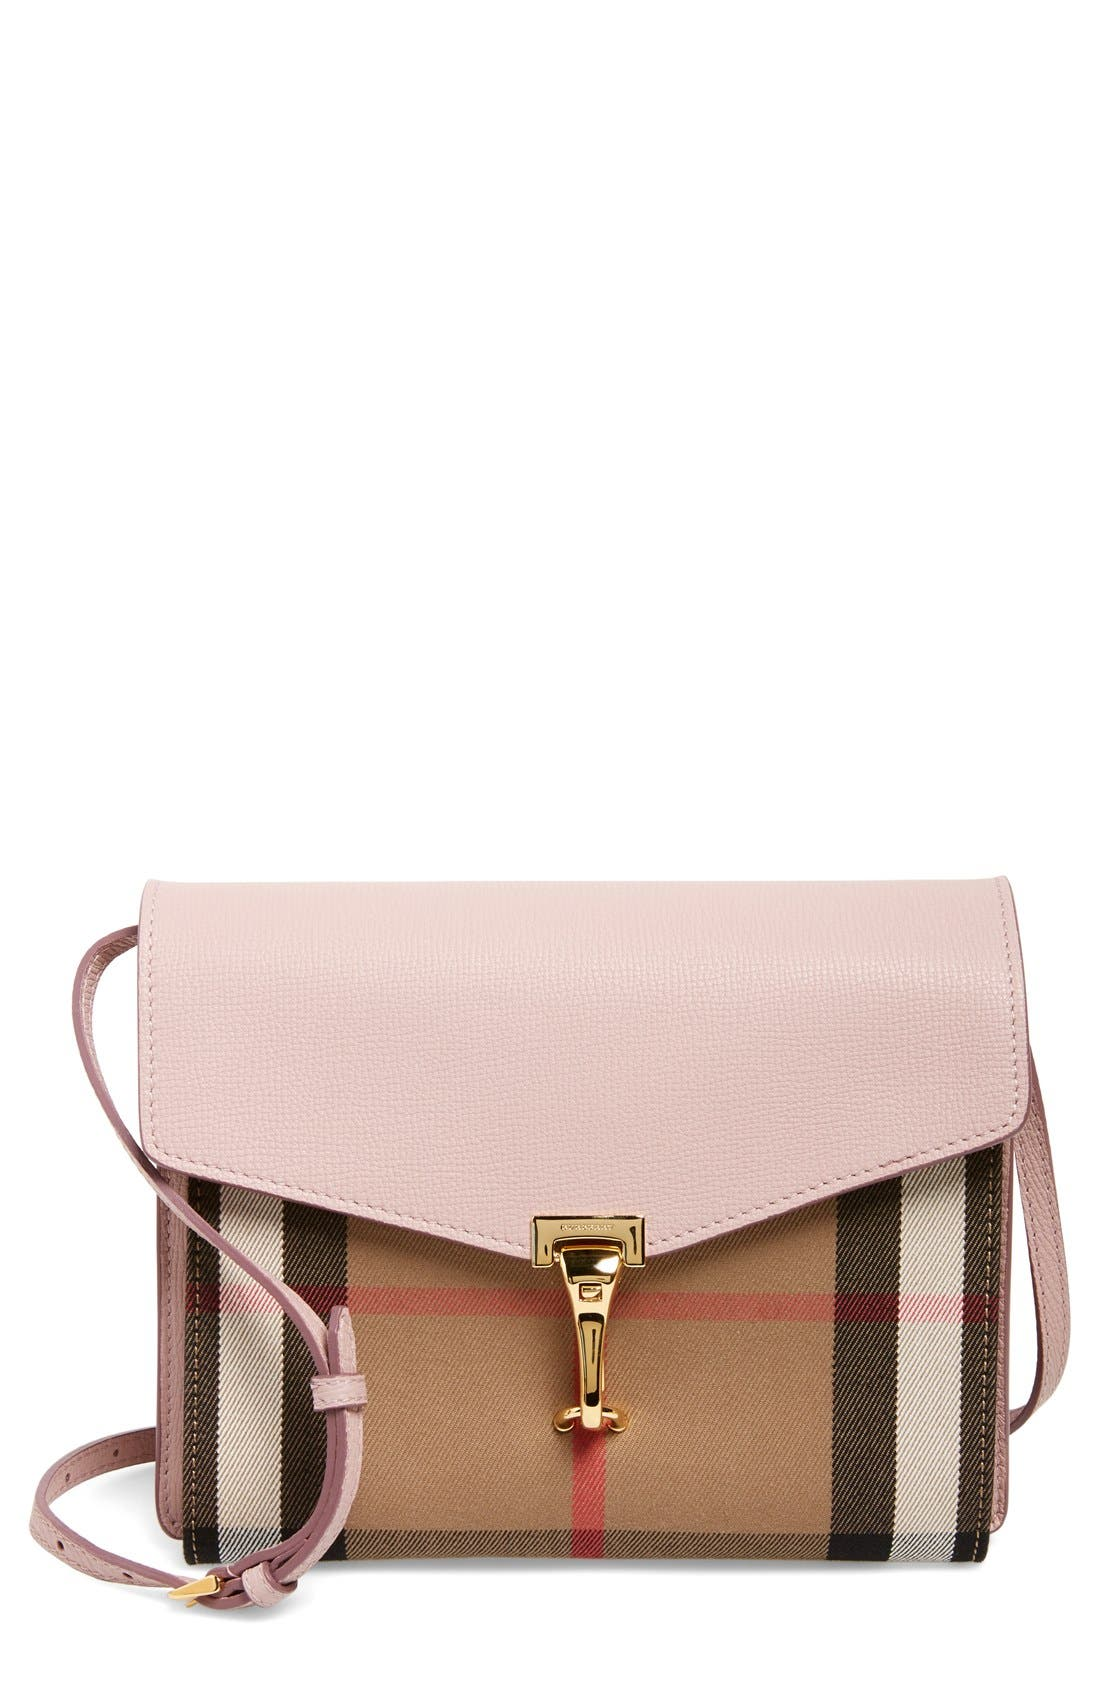 'Small Macken' Check Crossbody Bag,                         Main,                         color, Pale Orchid